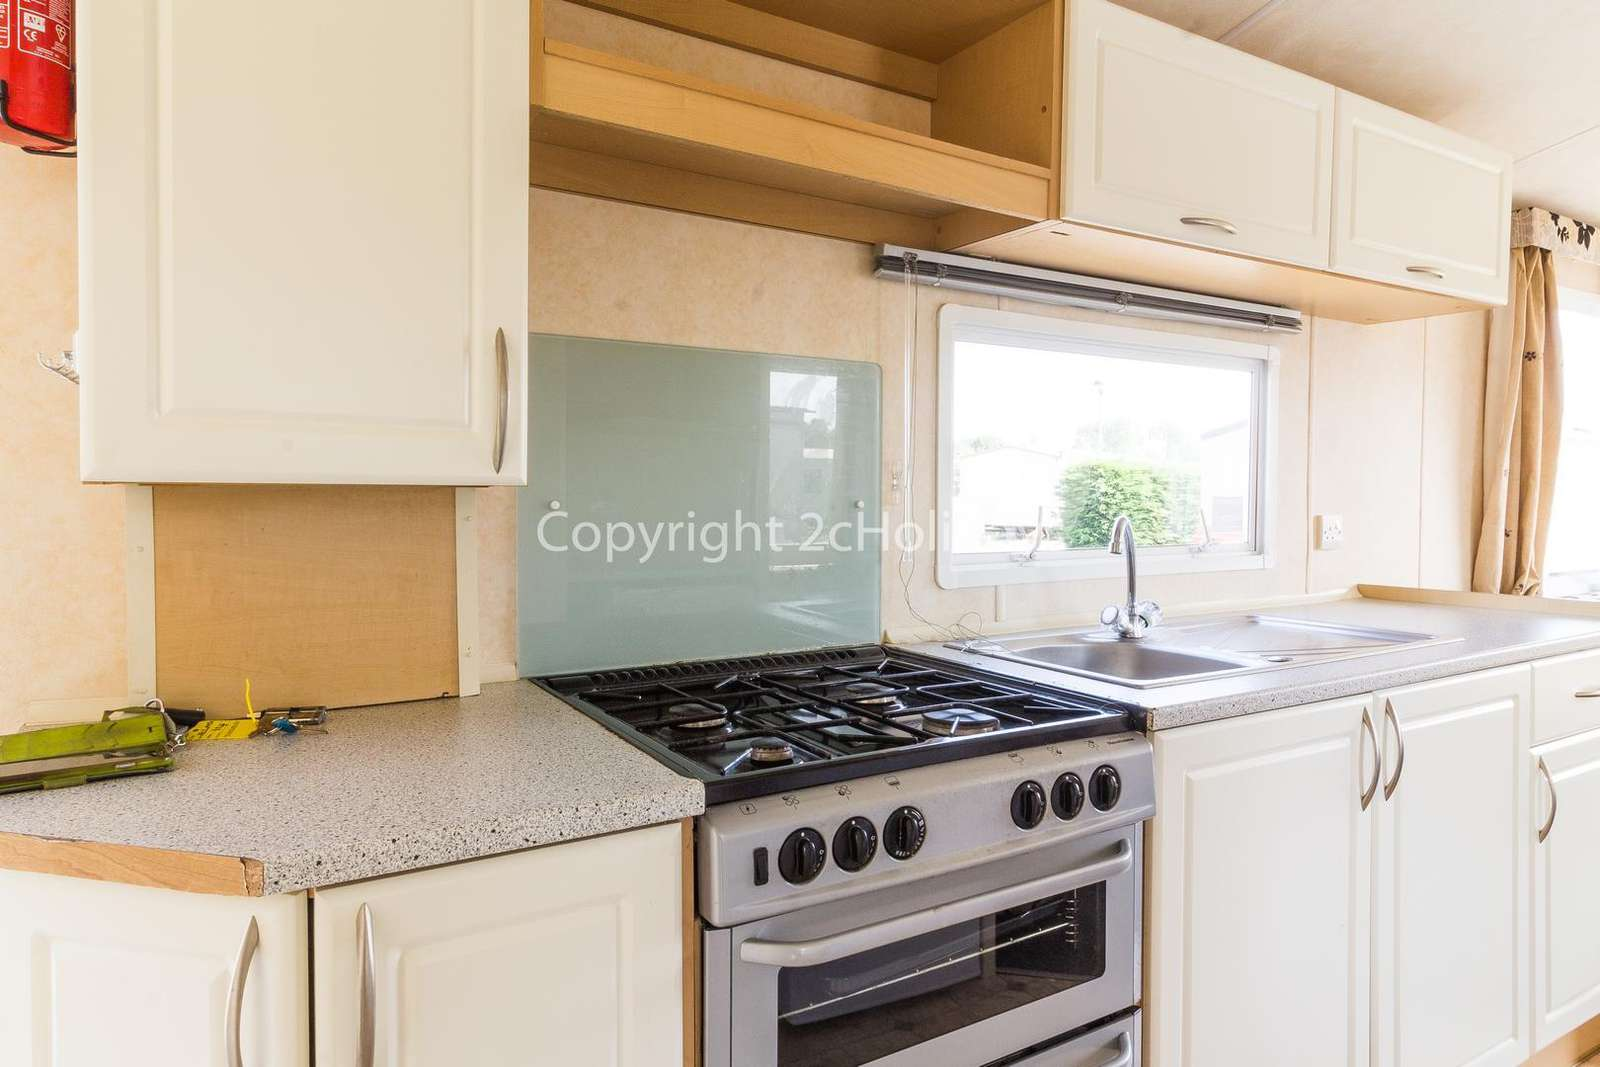 Fully equipped kitchen, perfect for self-catering holidays